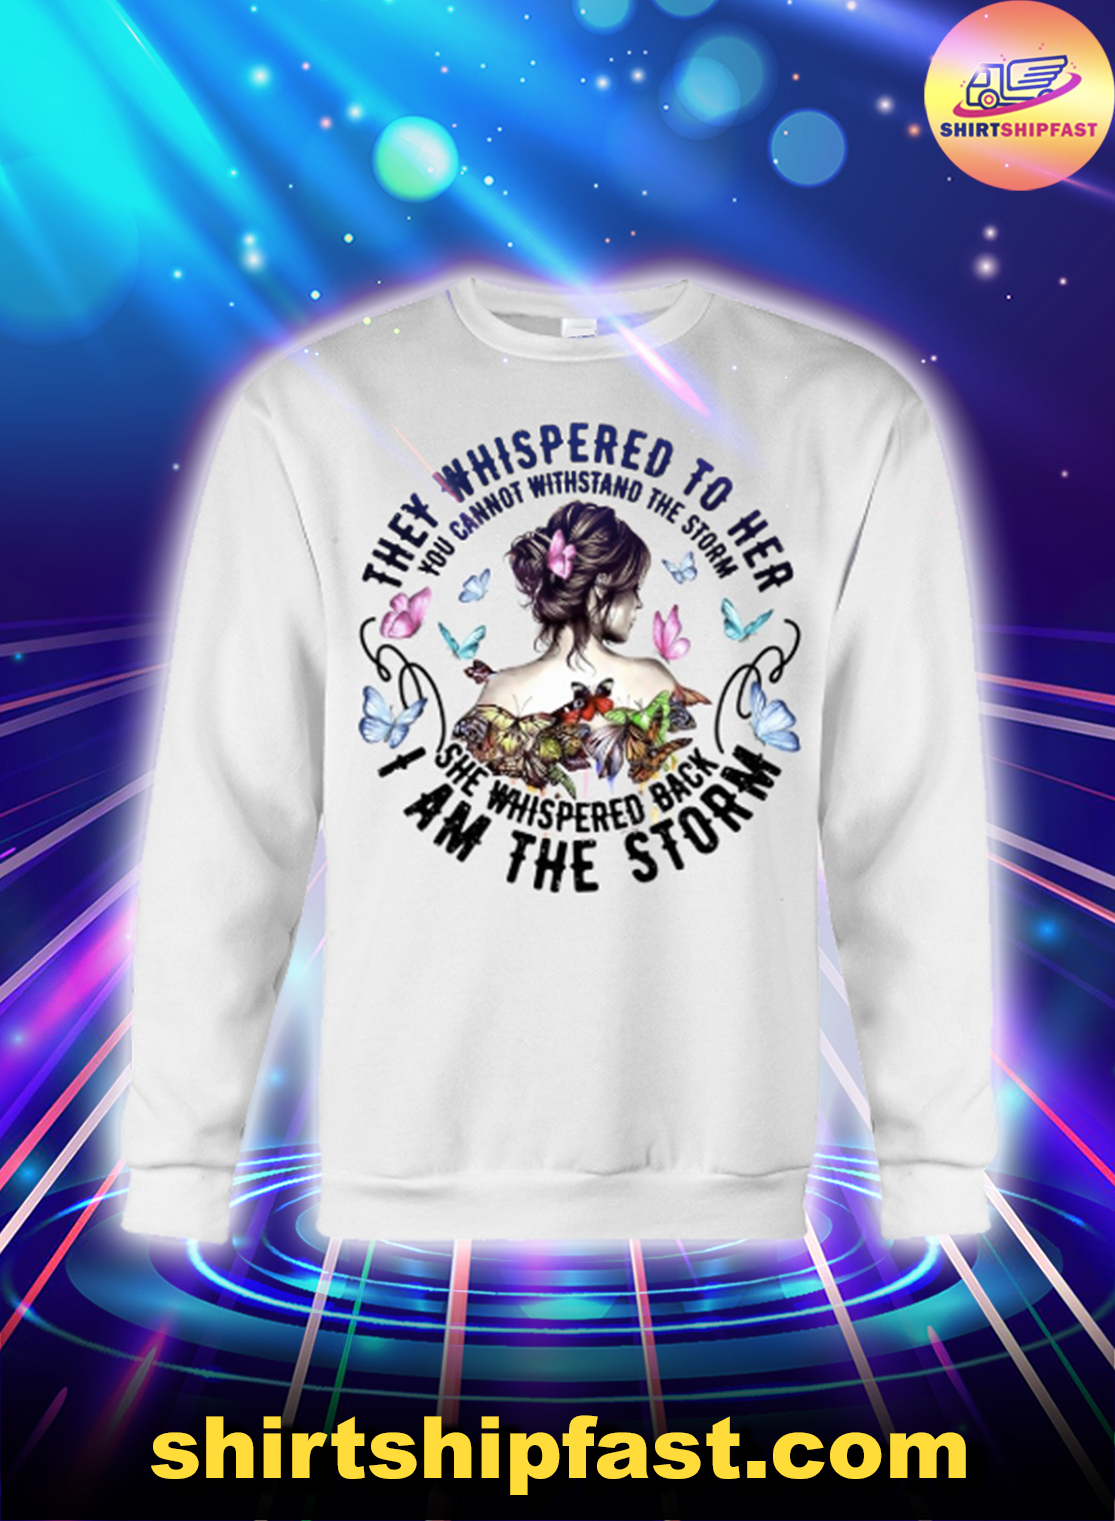 Butterfly They whispered to her I am the storm shirt and long sleeve tee